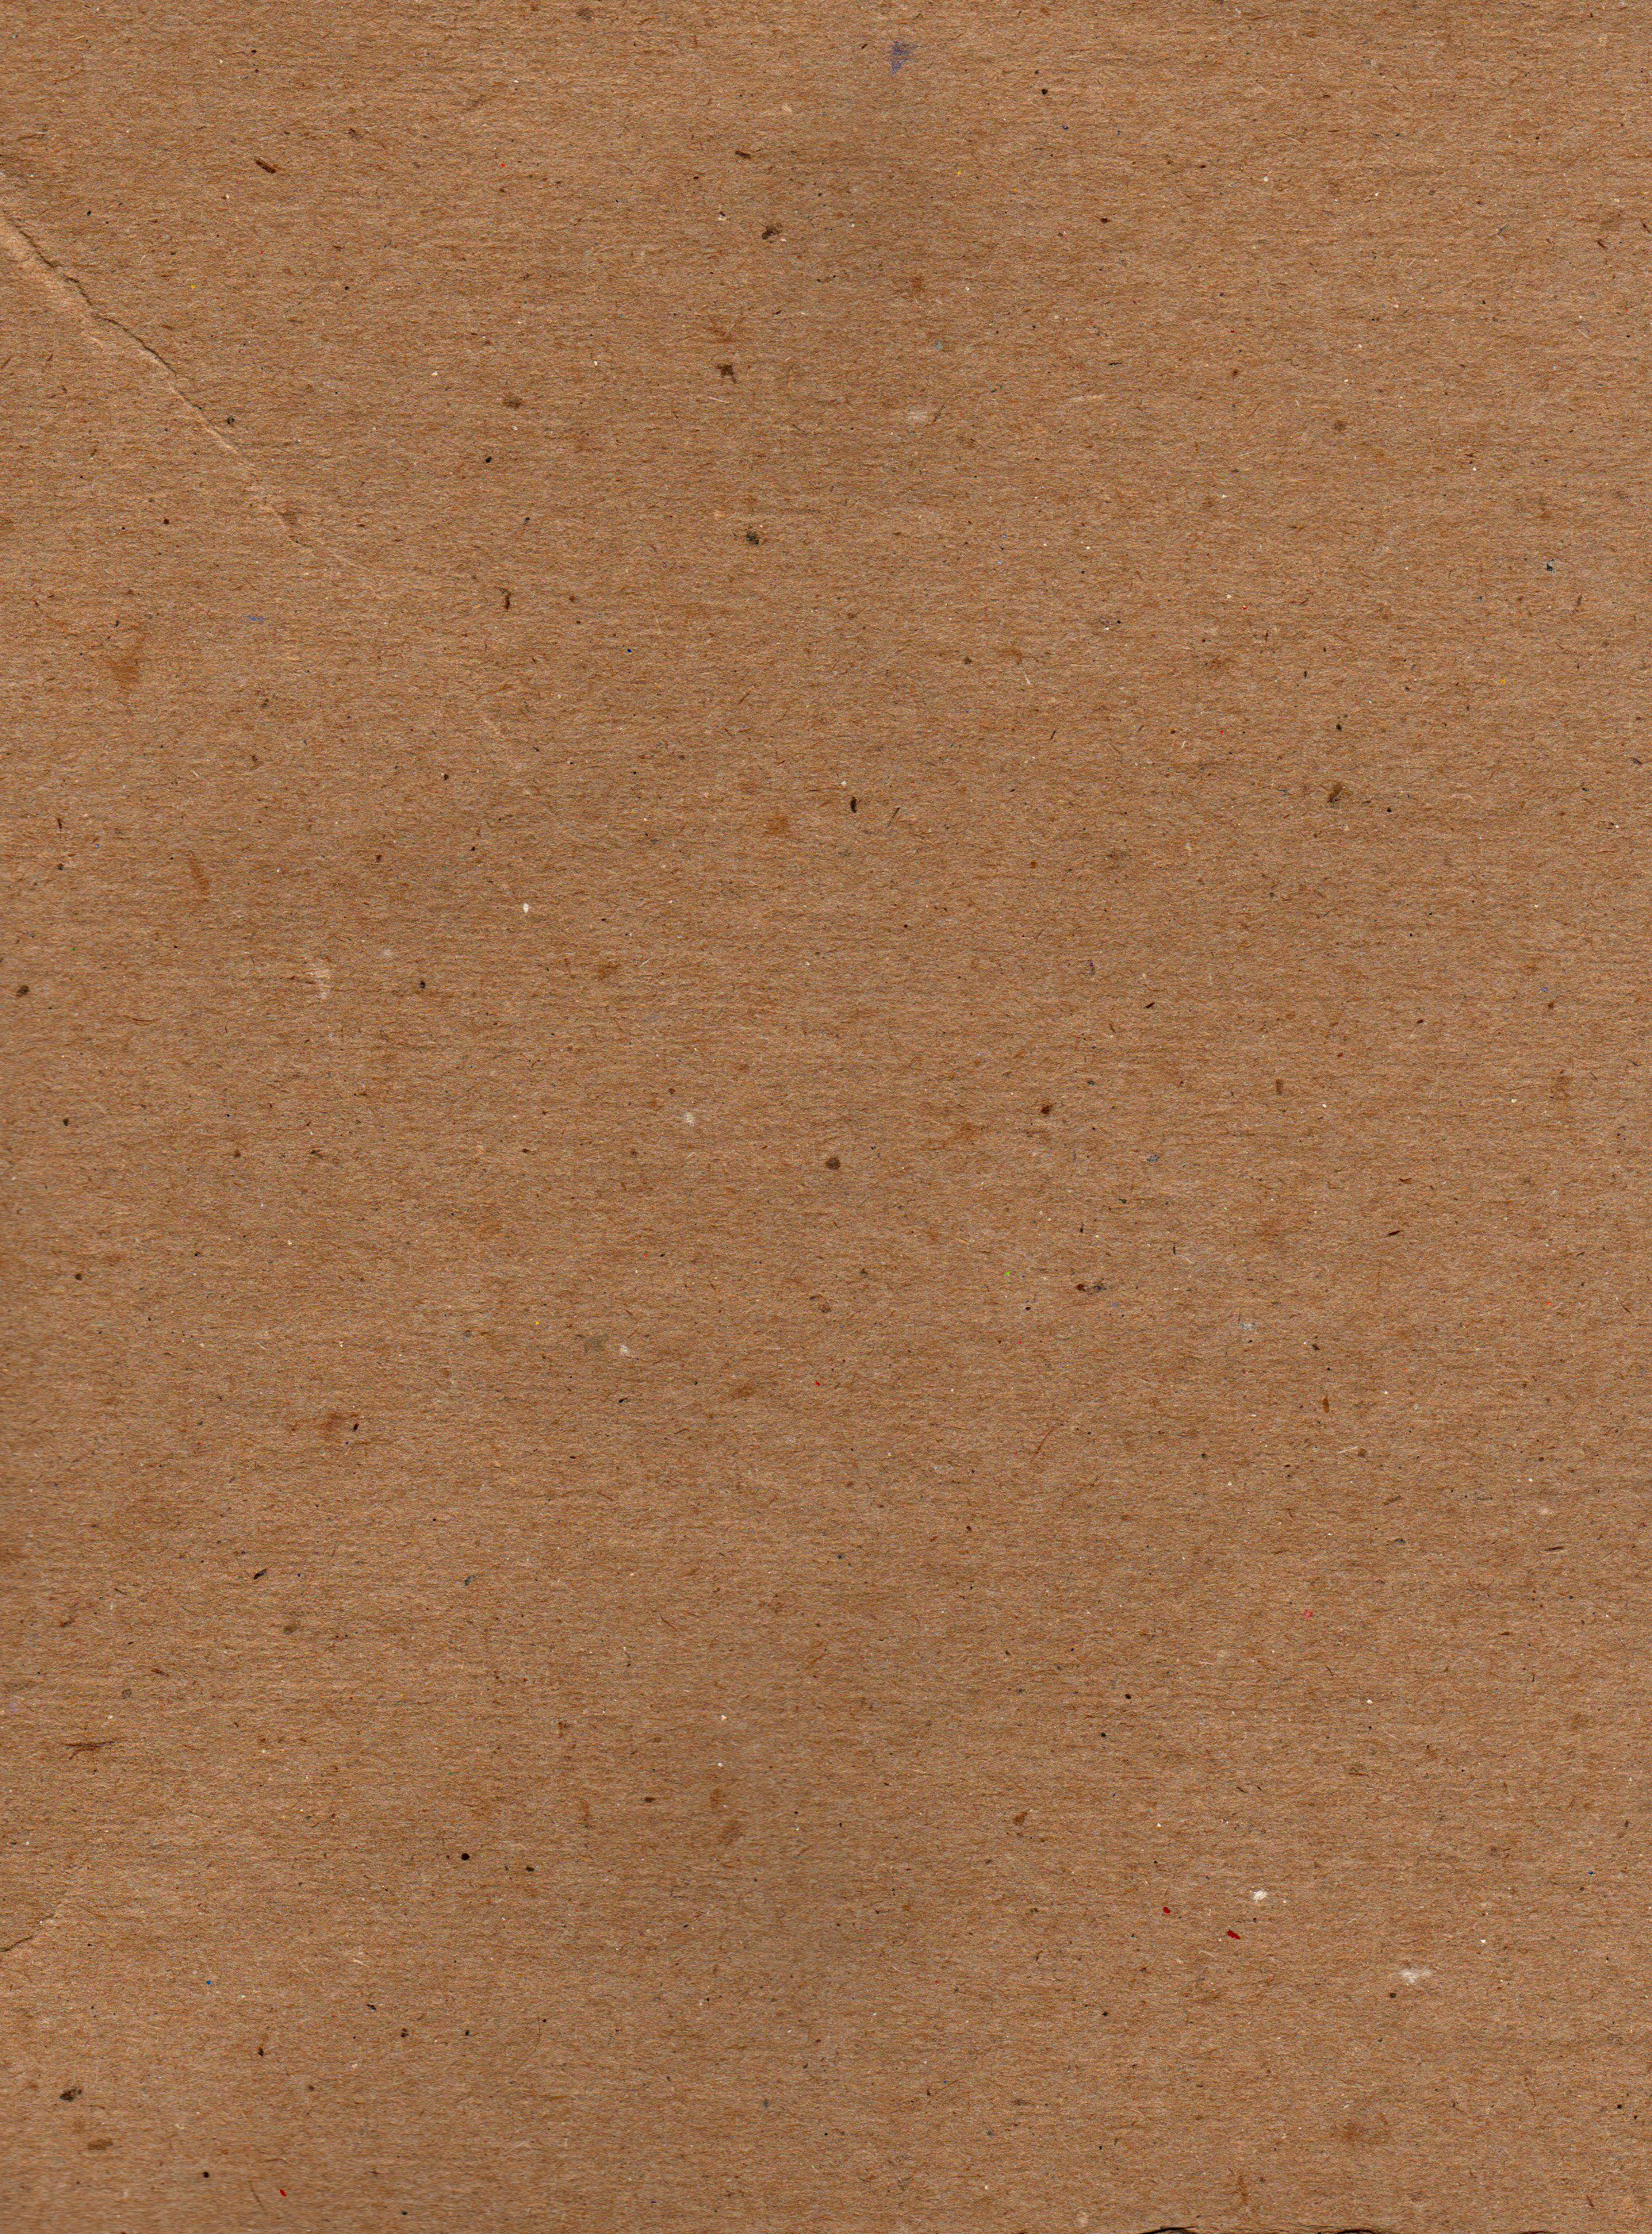 Free photo: Brown Paper Background - Border, Brown, Edges ...